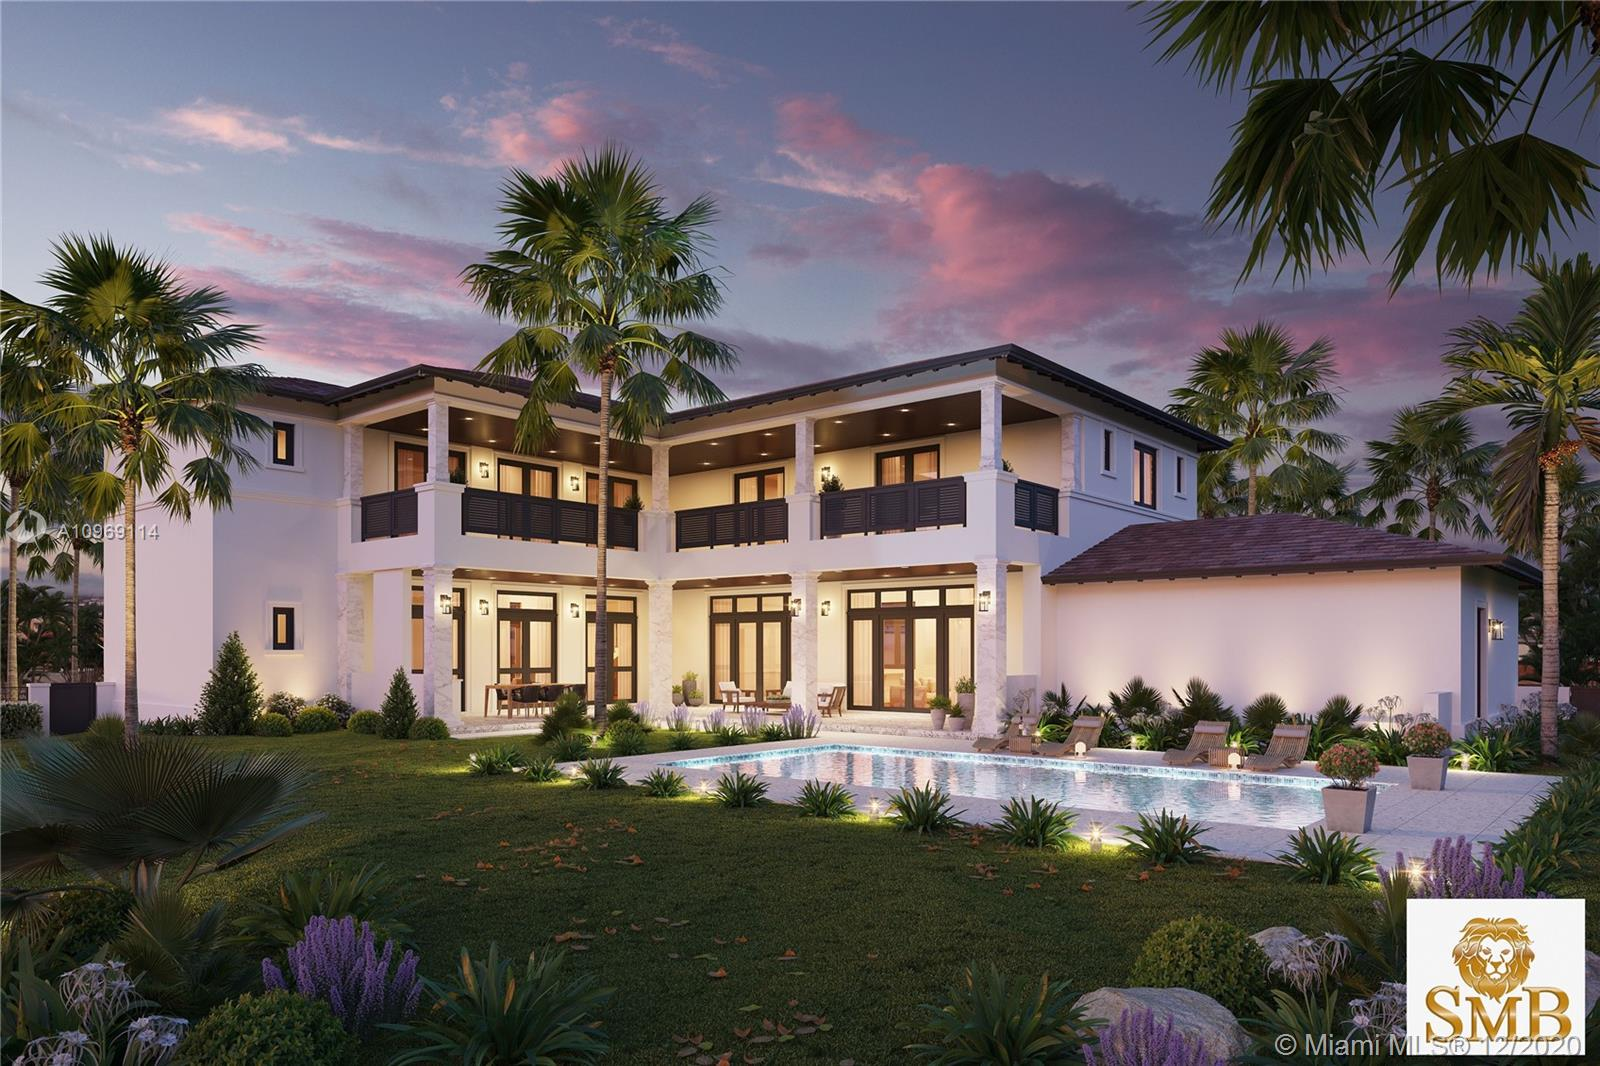 Imagine a 4,196 sq. ft. beautiful custom home on a serene and private lot minutes away from schools, parks, shopping, and entertainment. This is an incredible development opportunity to build your dream home on an 11,700 SF lot in Coral Gables. Use the available plans, or start fresh with your own. Photos are conceptual renderings.